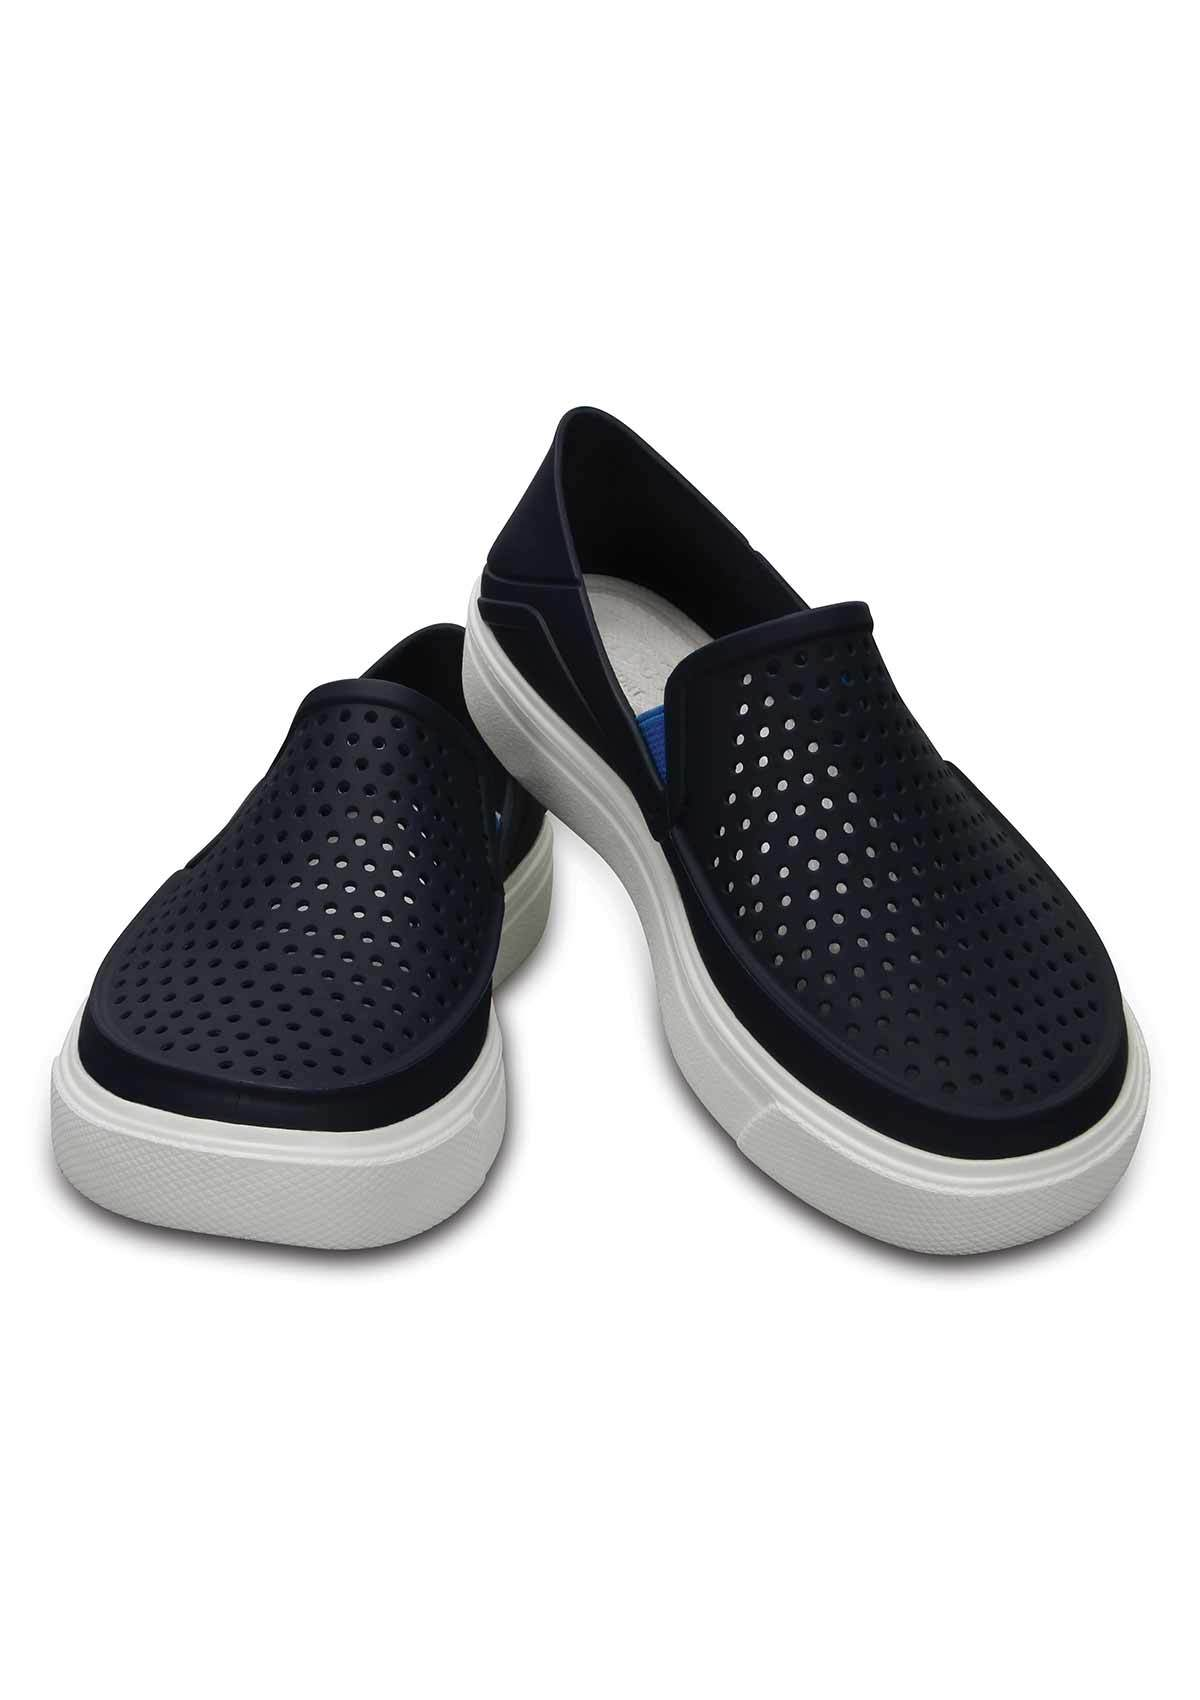 Sandália Crocs Infantil Unissex Slip-On